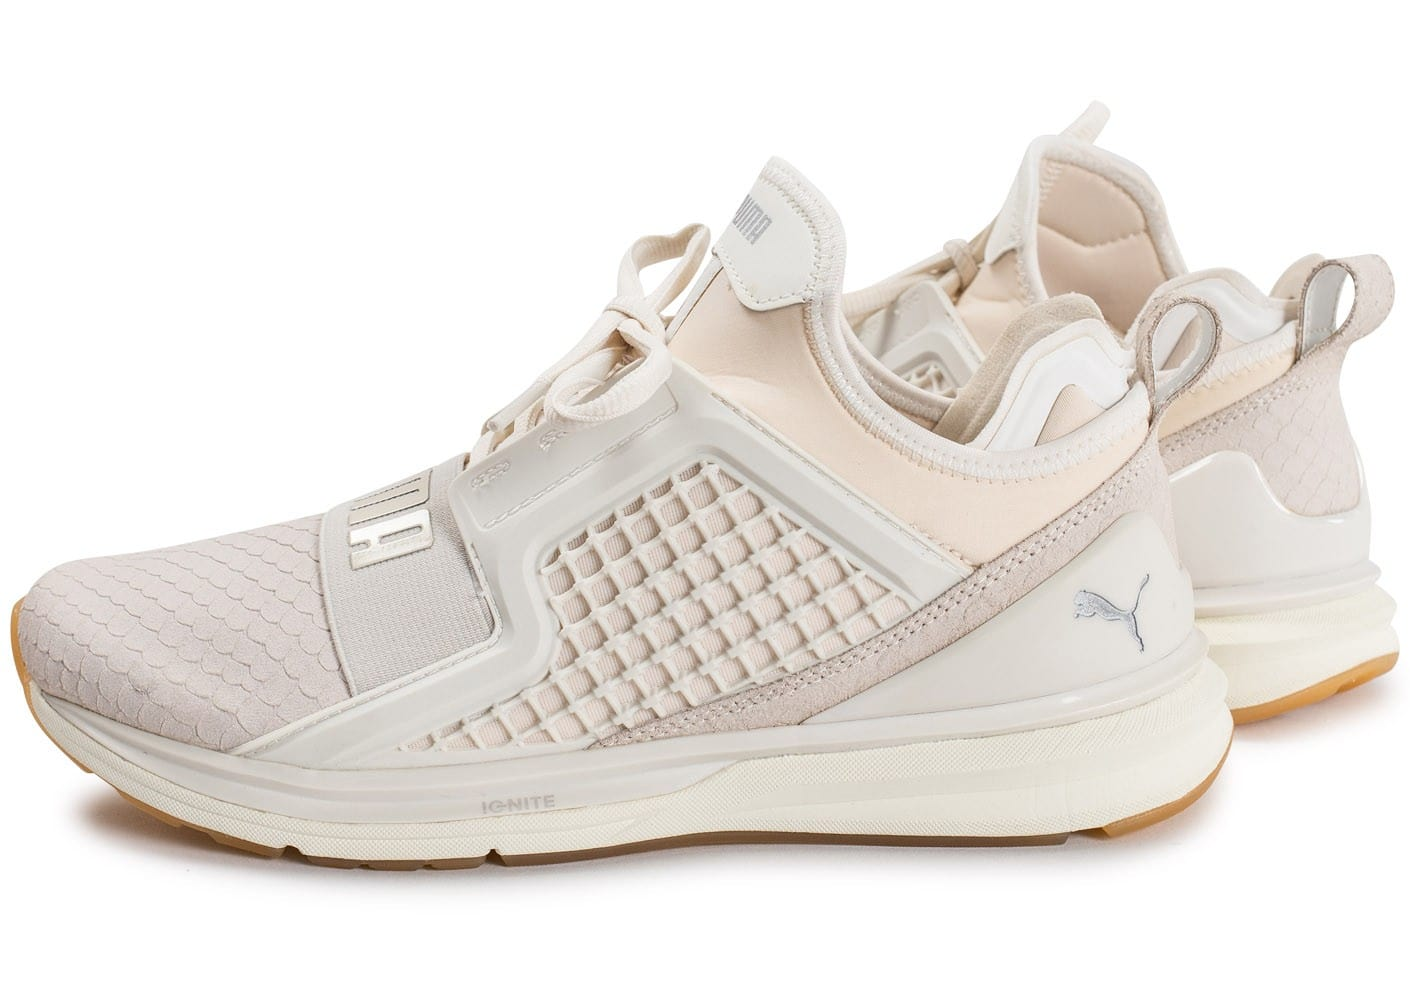 best website 315e5 e1c7d Puma Ignite Limitless Reptile blanche - Chaussures Baskets ...